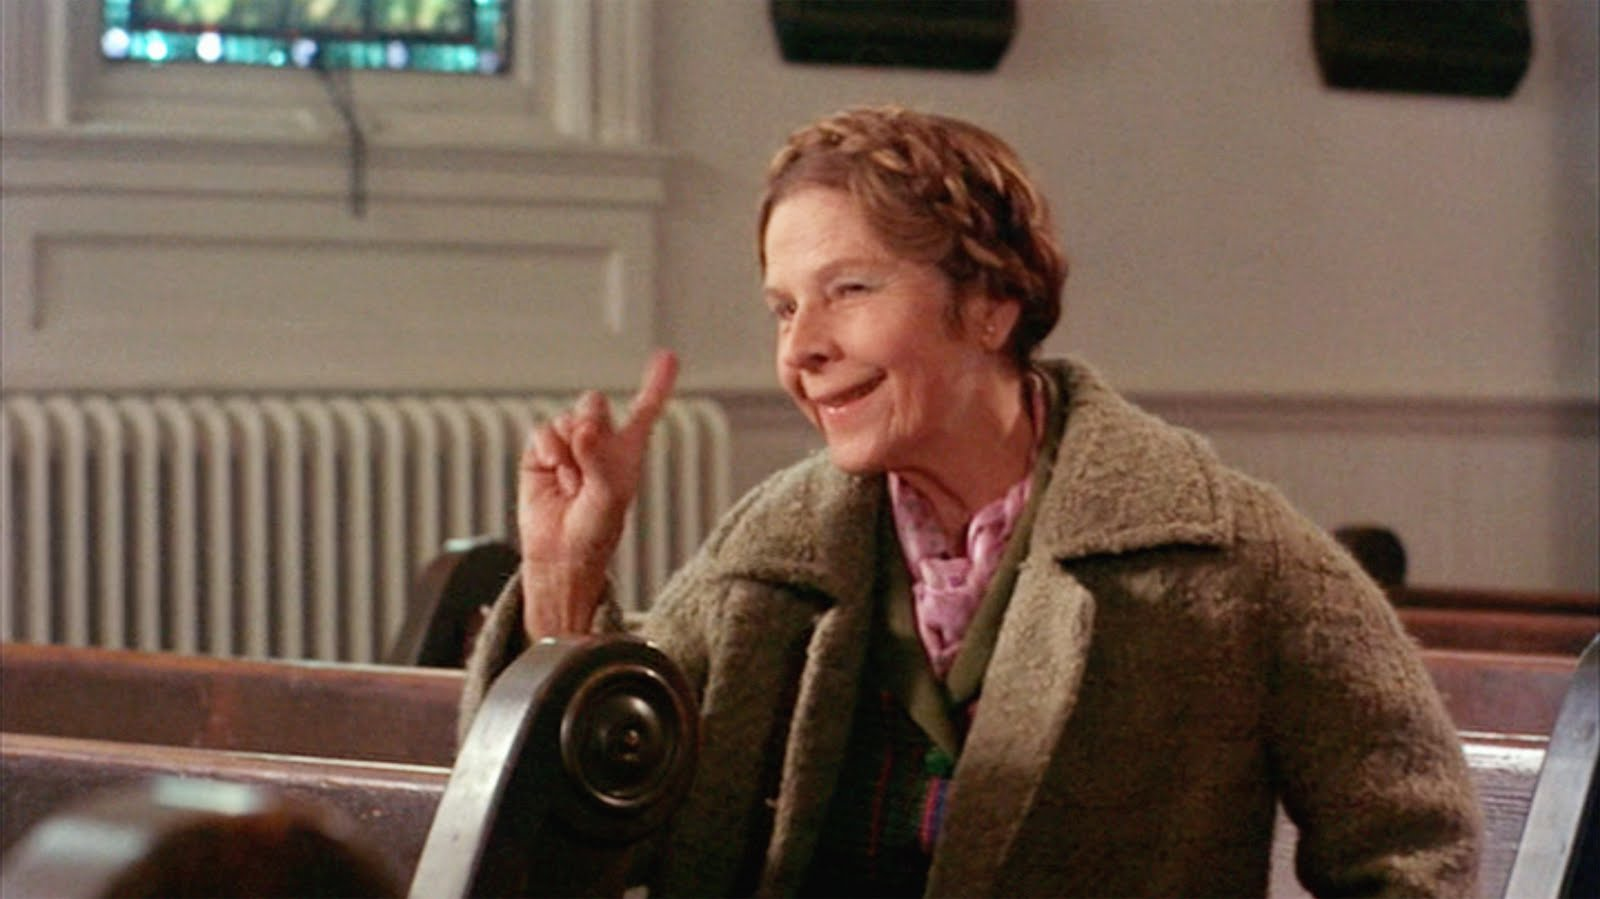 an analysis of the movie harold and maude A box office failure upon its initial release in 1971 which slowly but surely amassed a global cult following, harold and maude (1971) is one of those cinematic oddities that is hard to imagine being made within the confines of today's film industry.